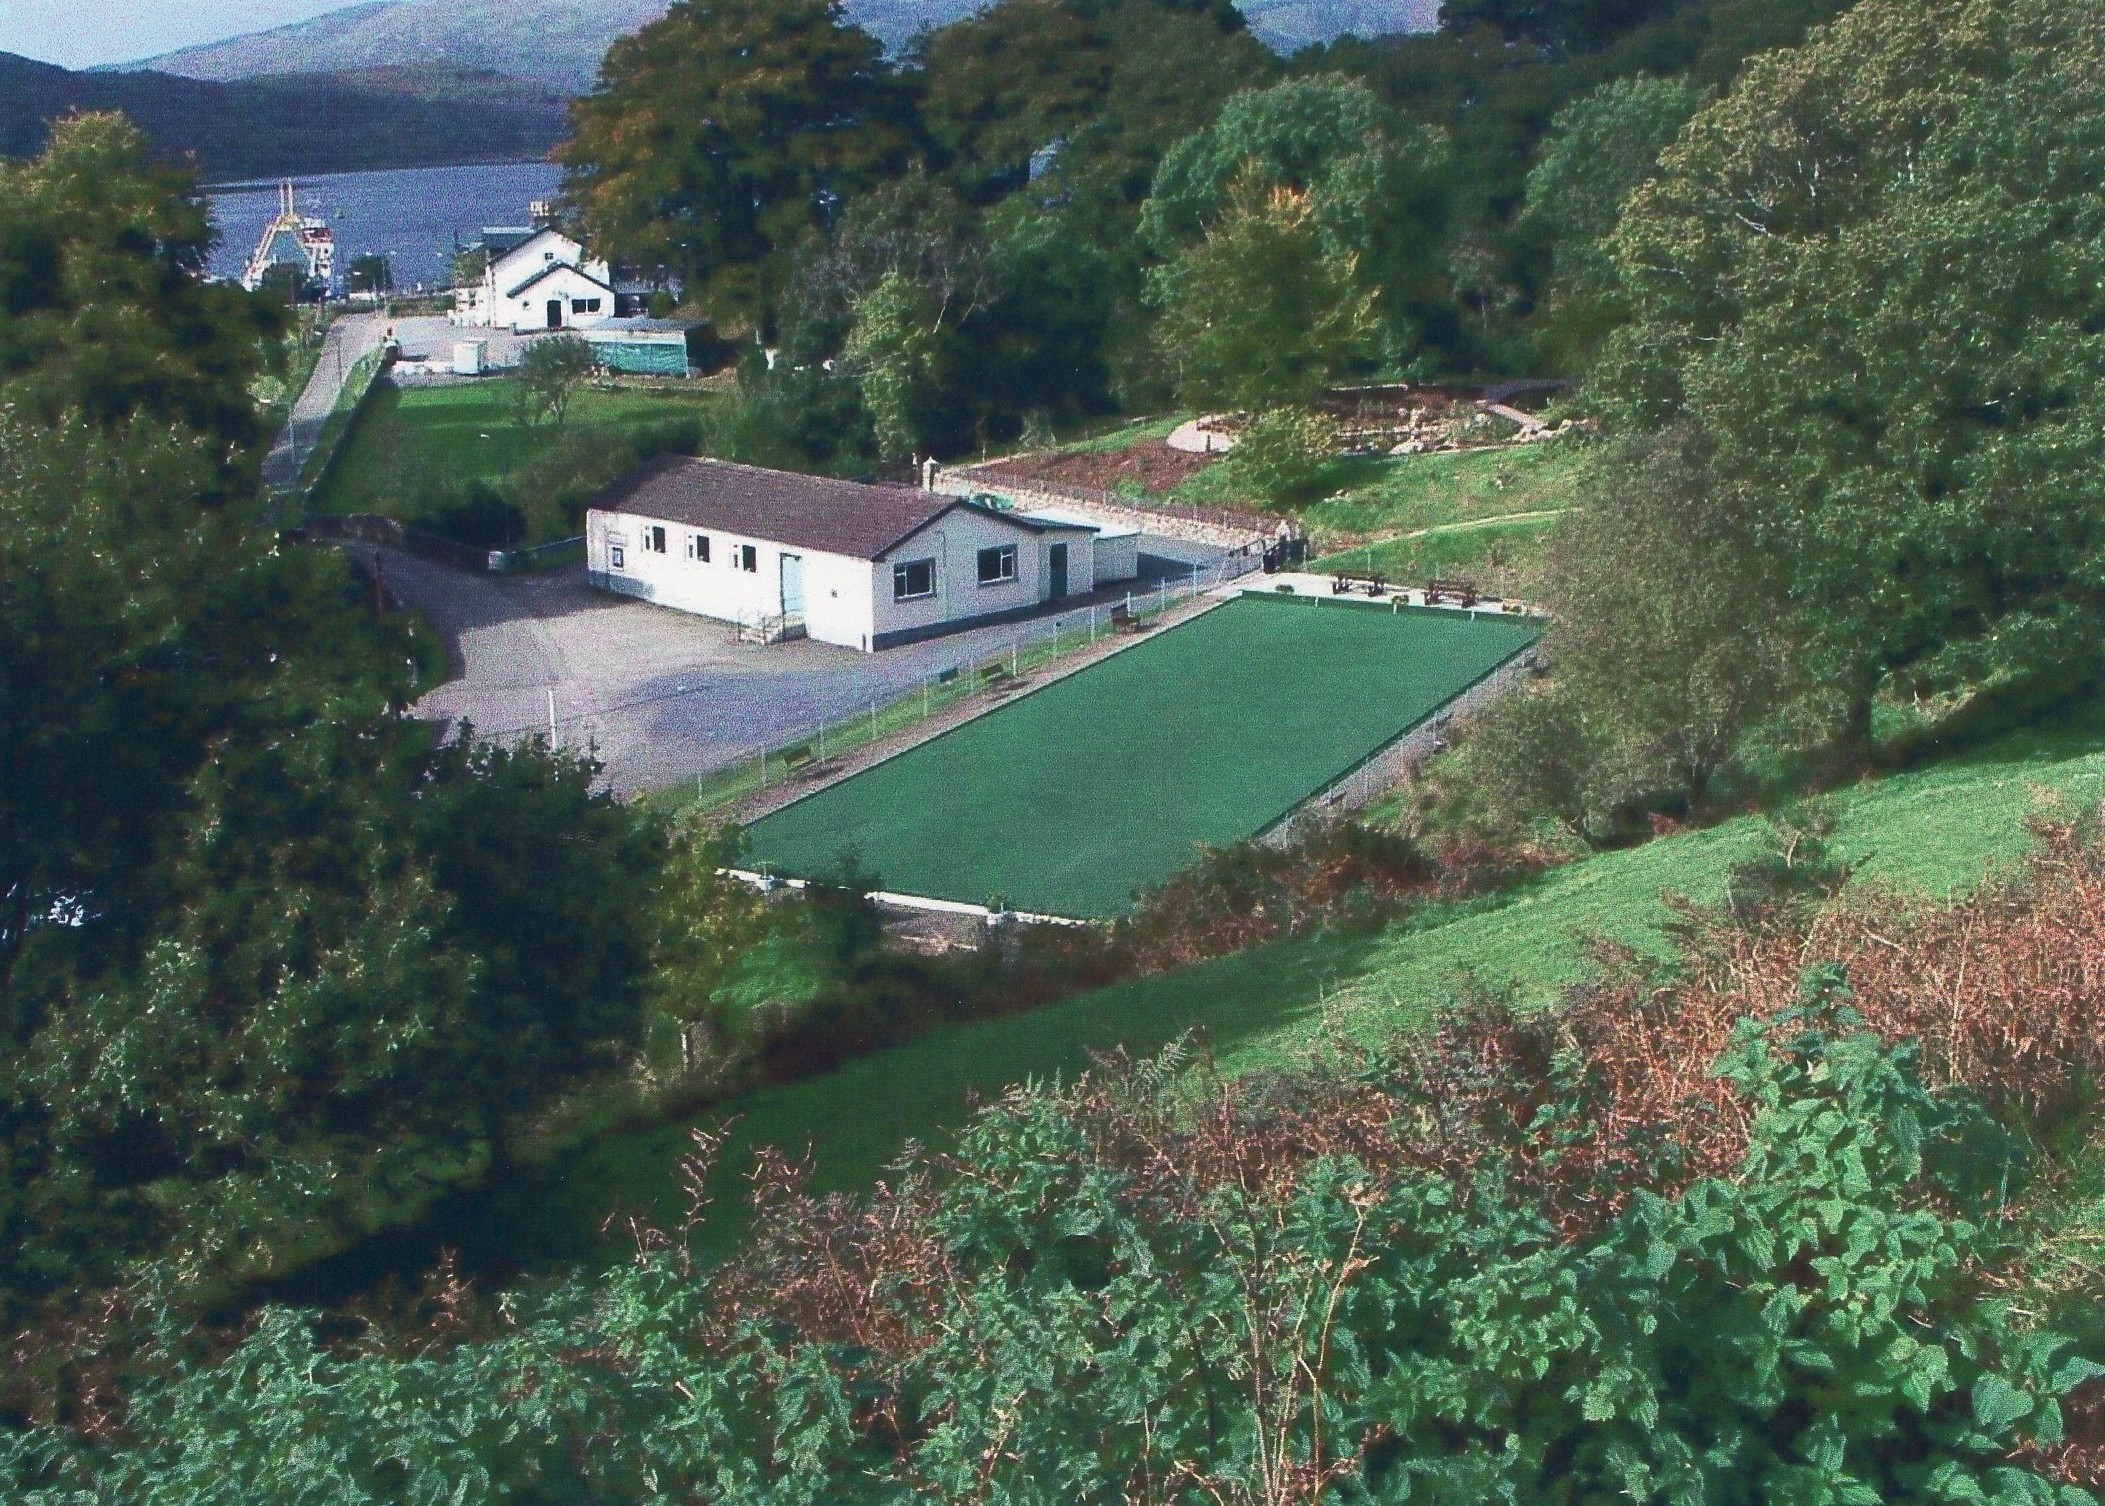 The Village Hall and Bowling Green